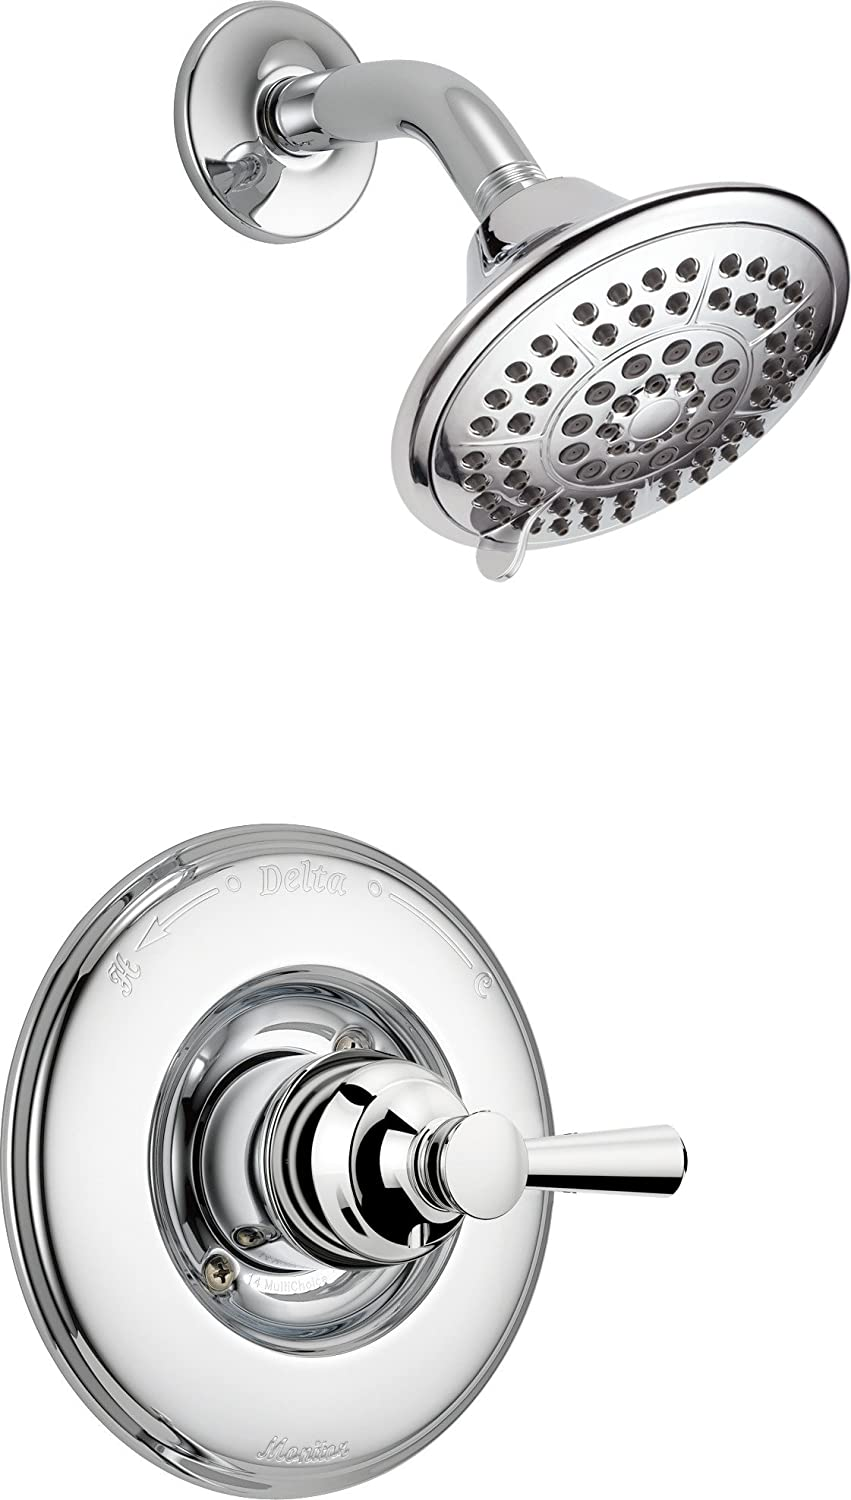 Delta Faucet T14293 Monitor 14 Series Shower Trim, Chrome - - Amazon.com